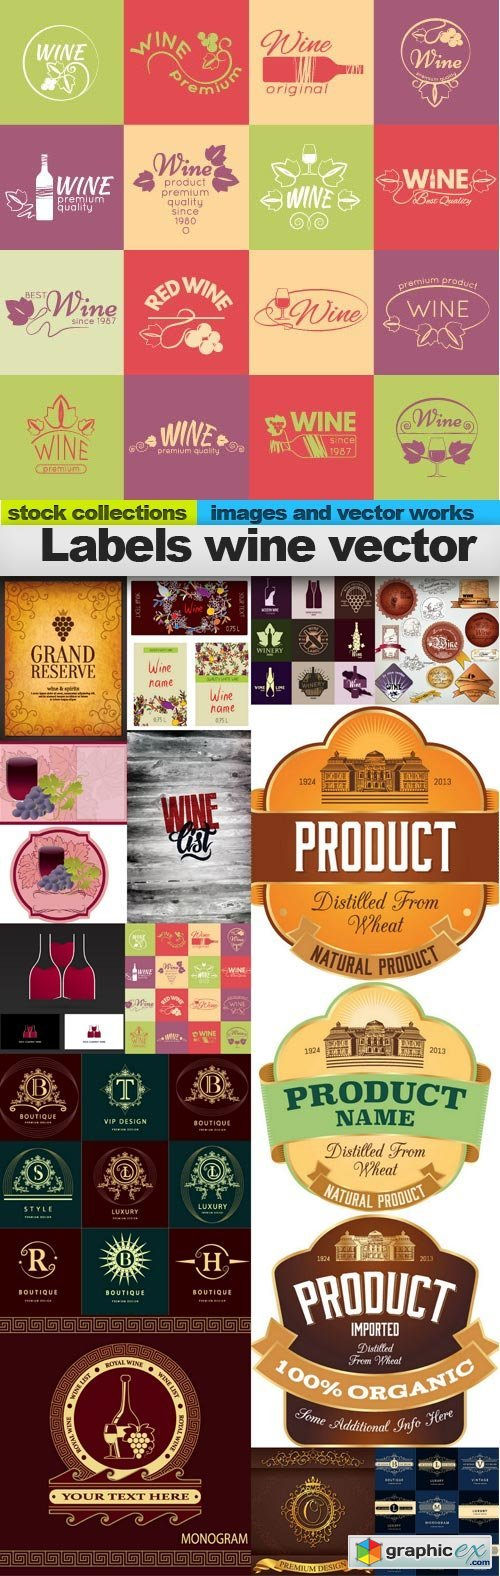 Labels wine vector, 15 x EPS